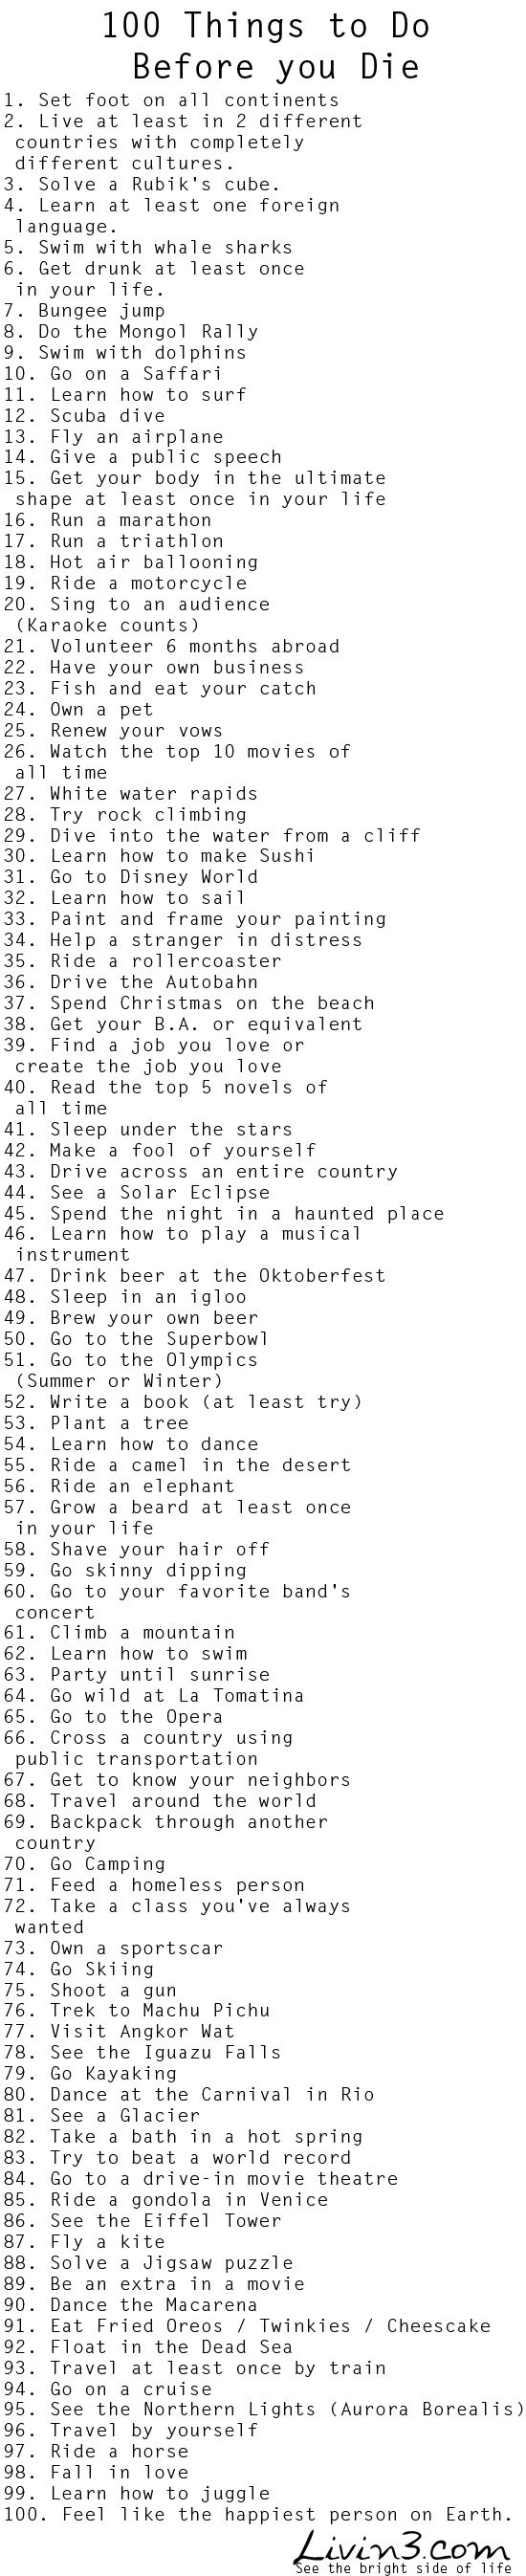 "100 Things to do before I die ""Bucket List""  Live Your Life."